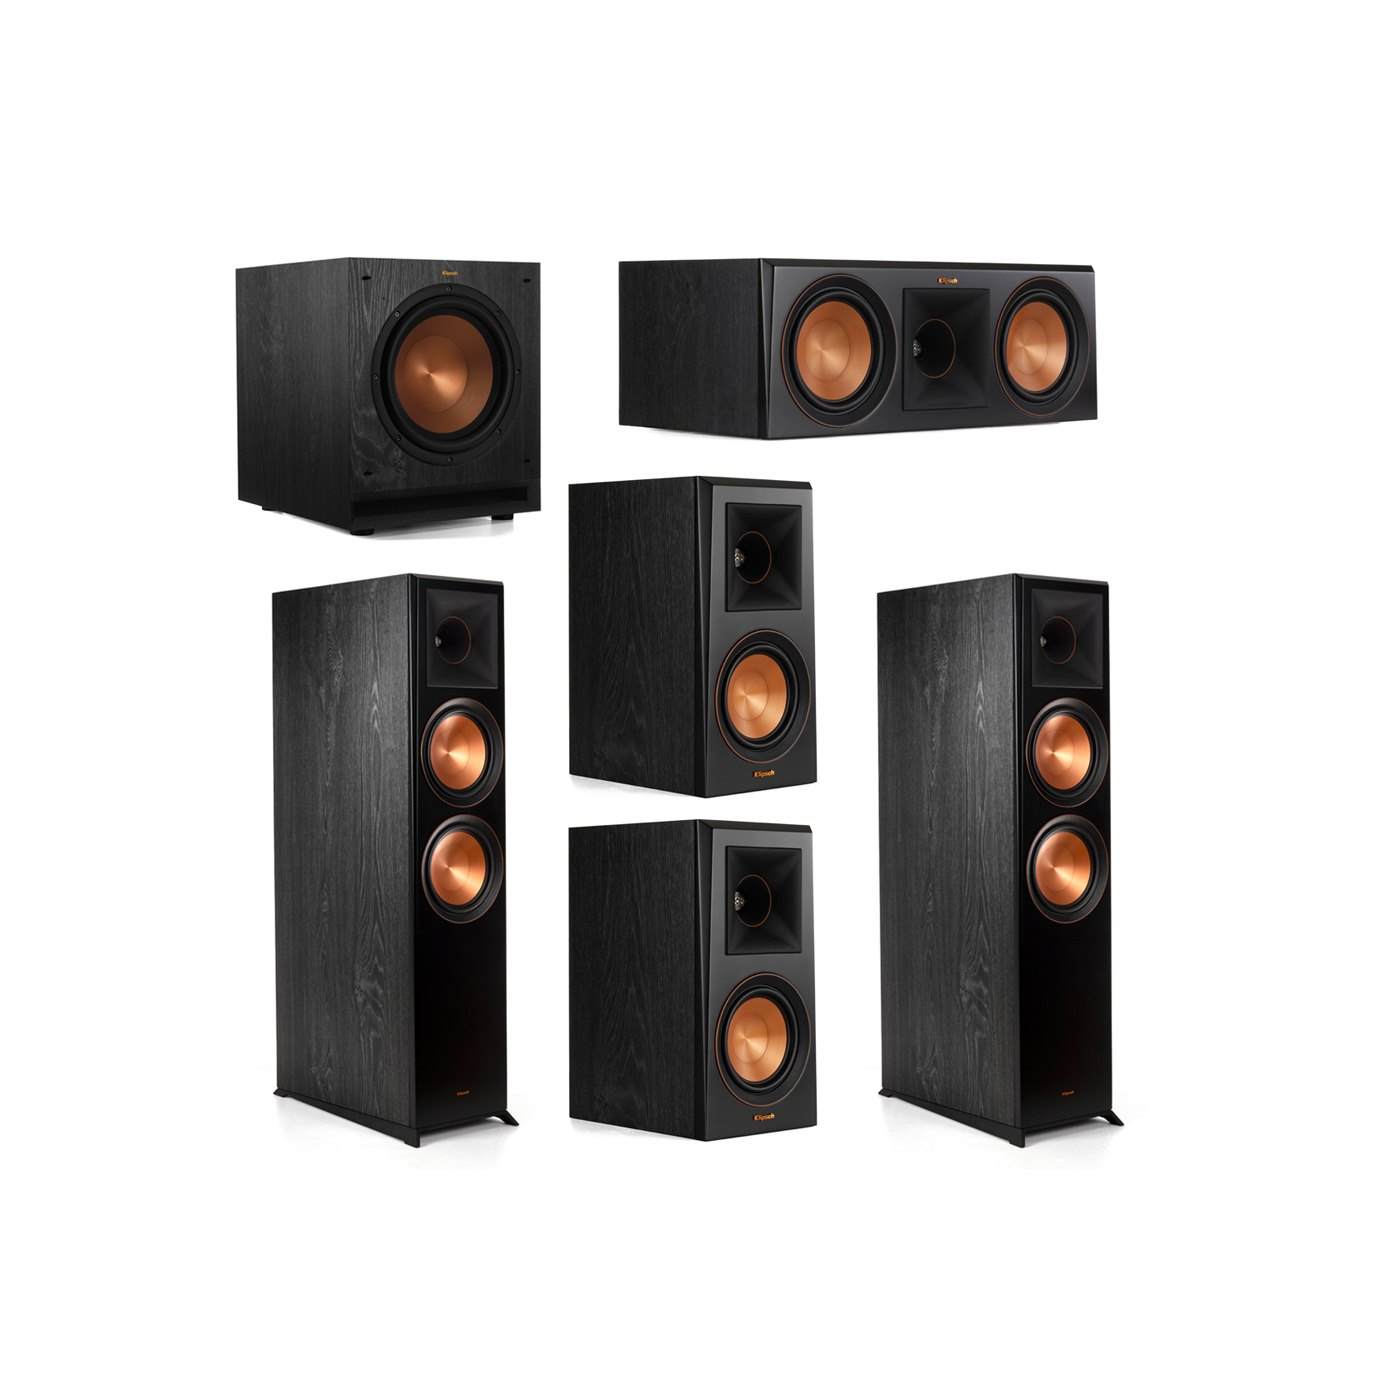 Klipsch 5.1.2 System - 2 RP-8060FA Dolby Atmos Speakers, 1 RP-600C, 2 RP-500M Speakers, 1 SPL-100